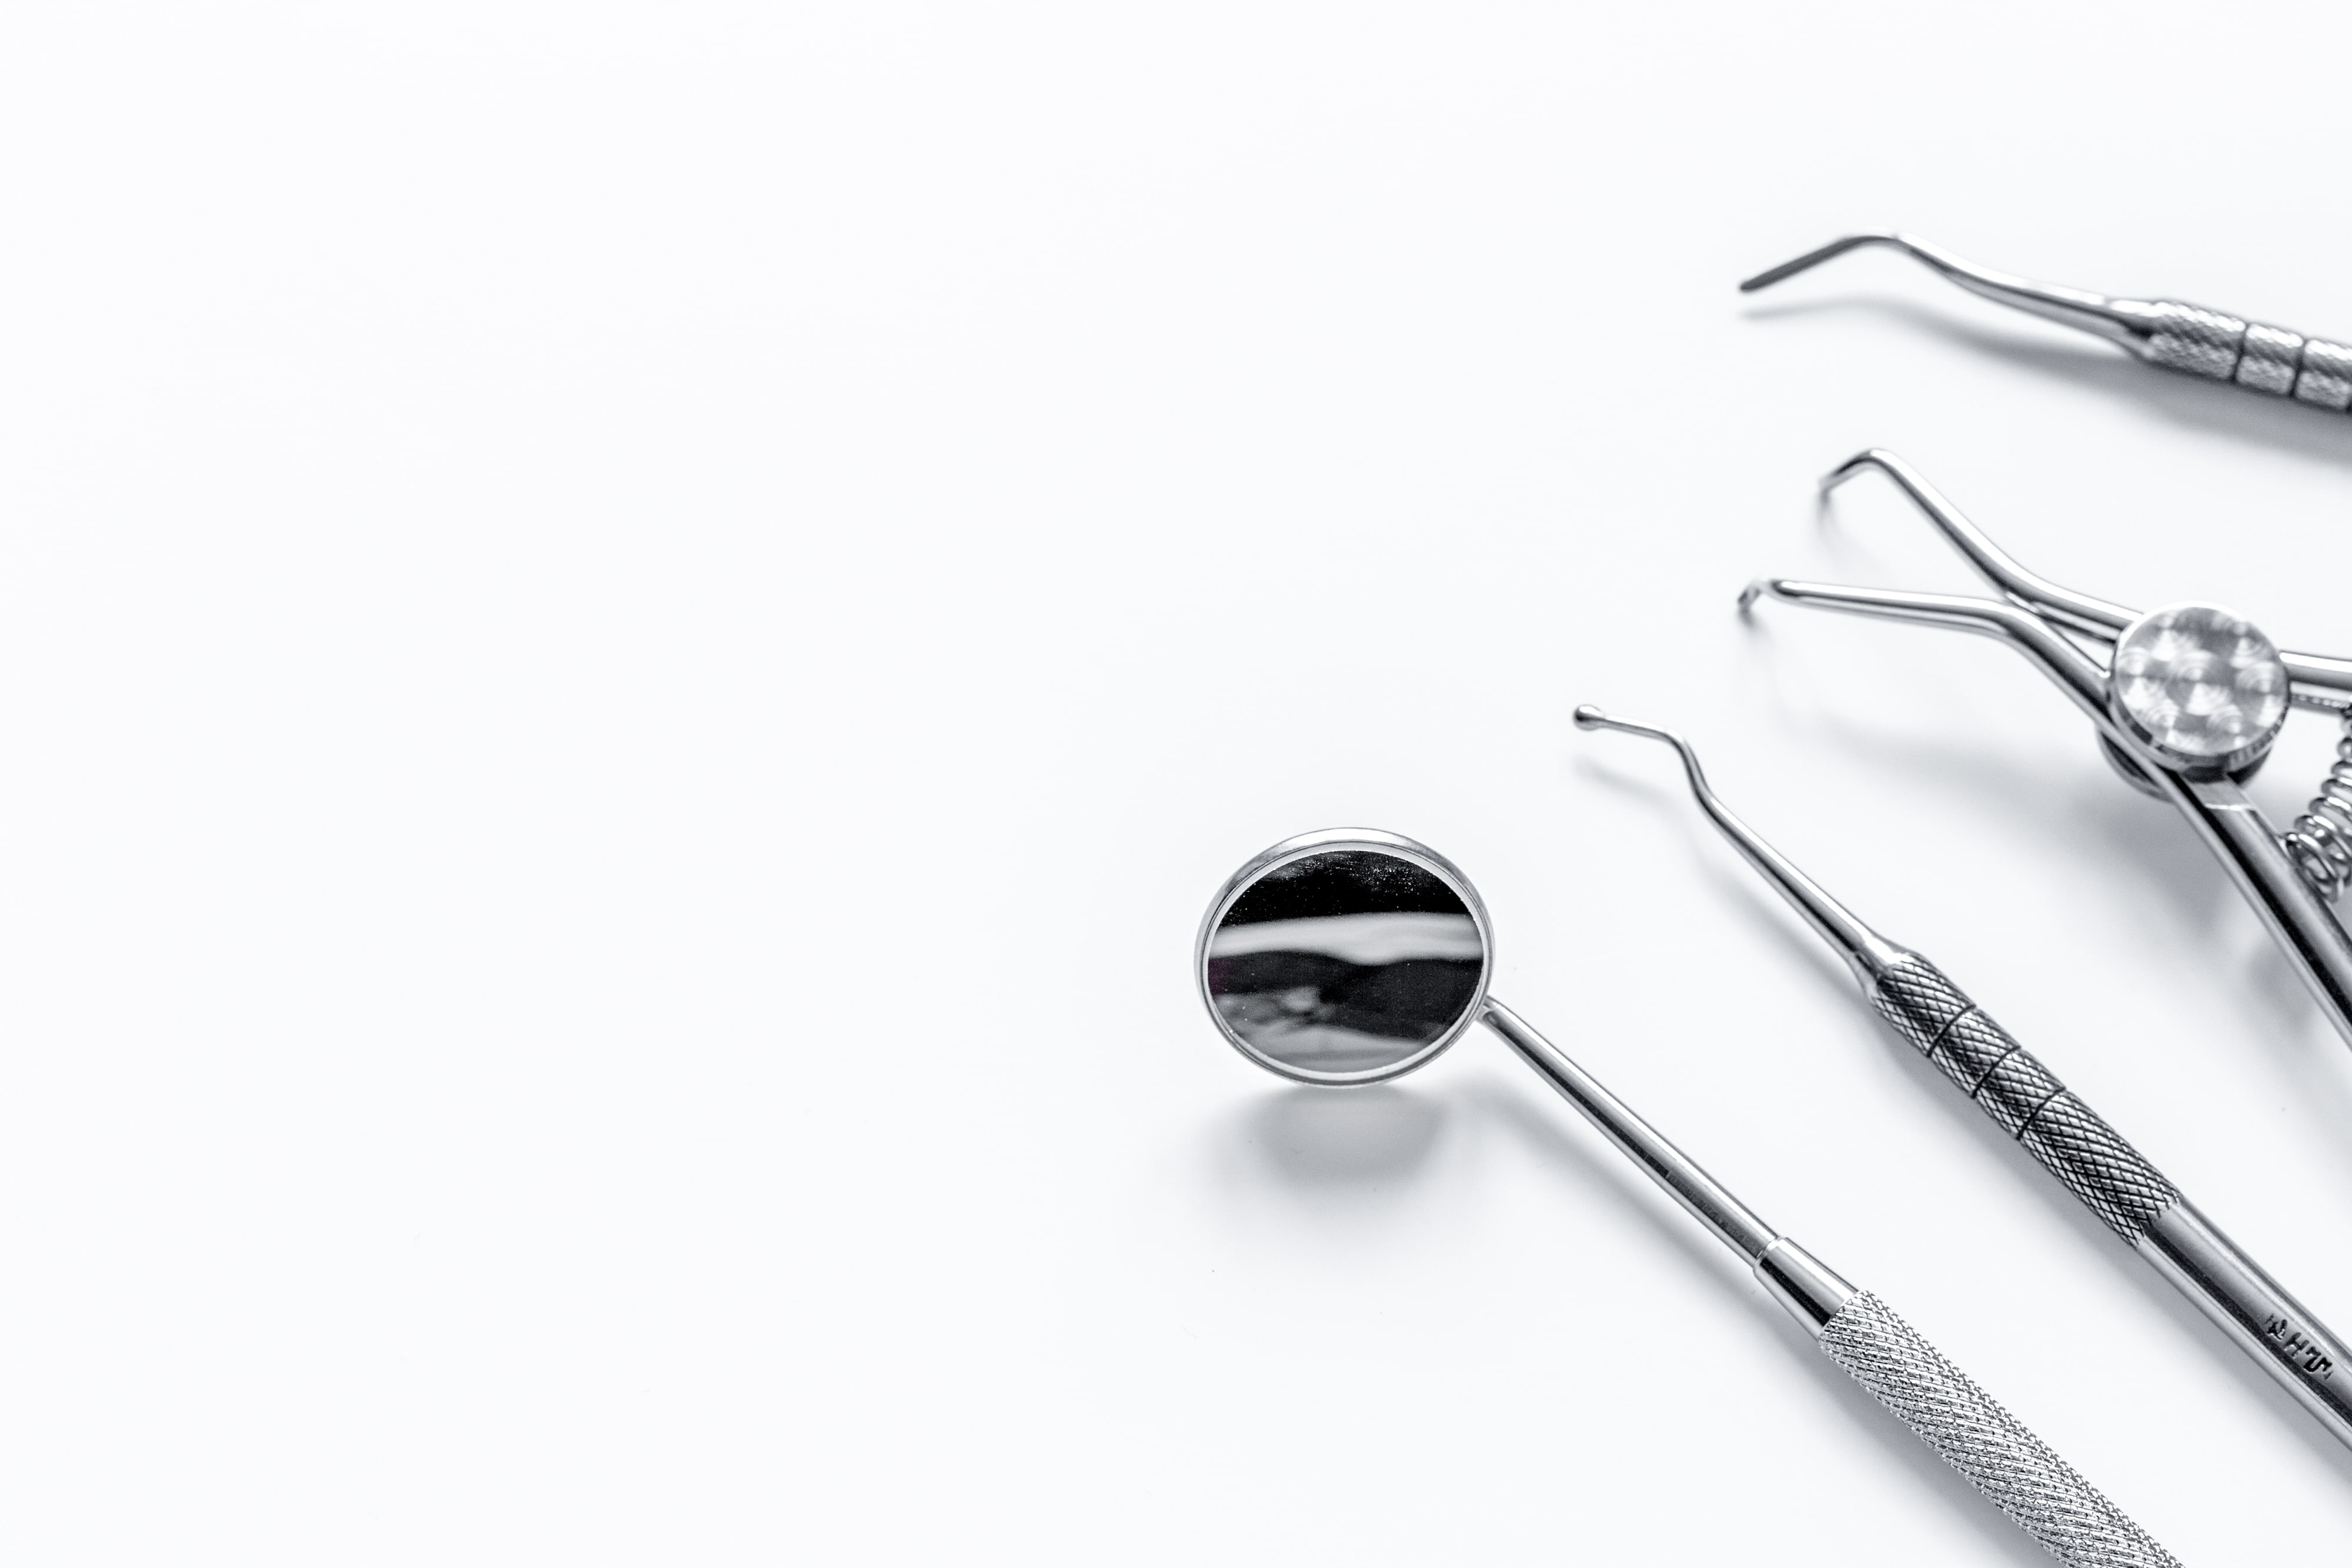 Various dental tools on a white background